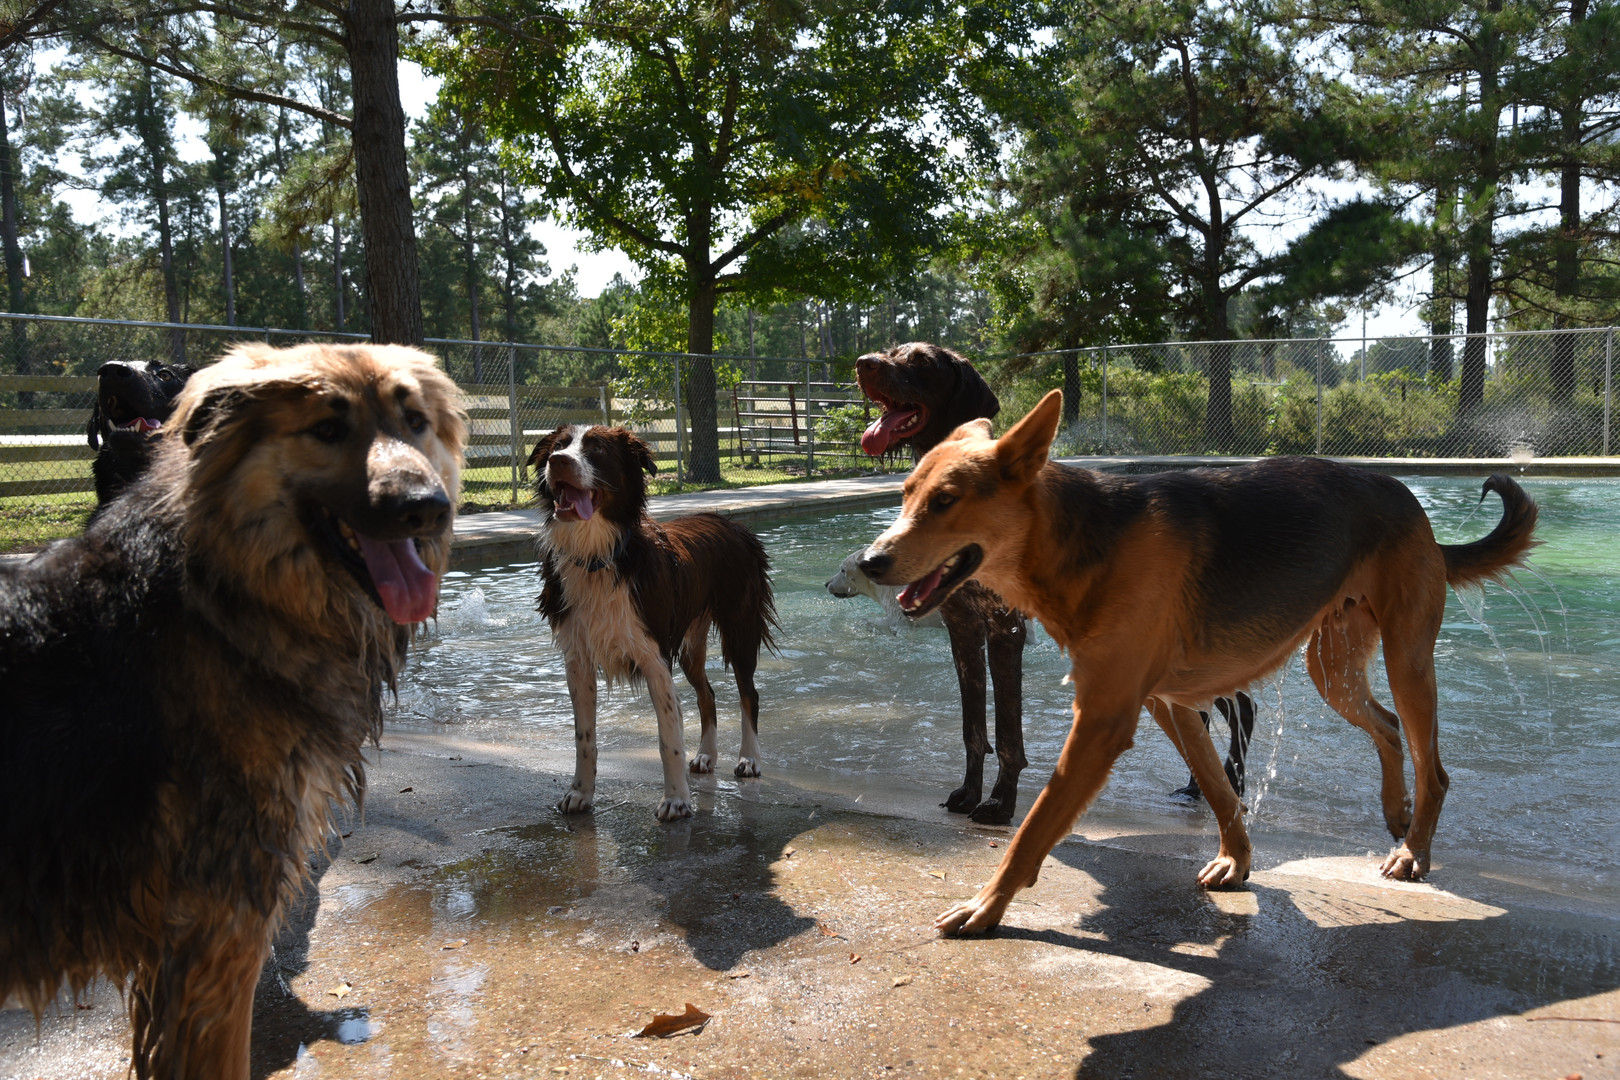 The Barkly Dog Daycare: Dogs Learn to Socialize and Play!